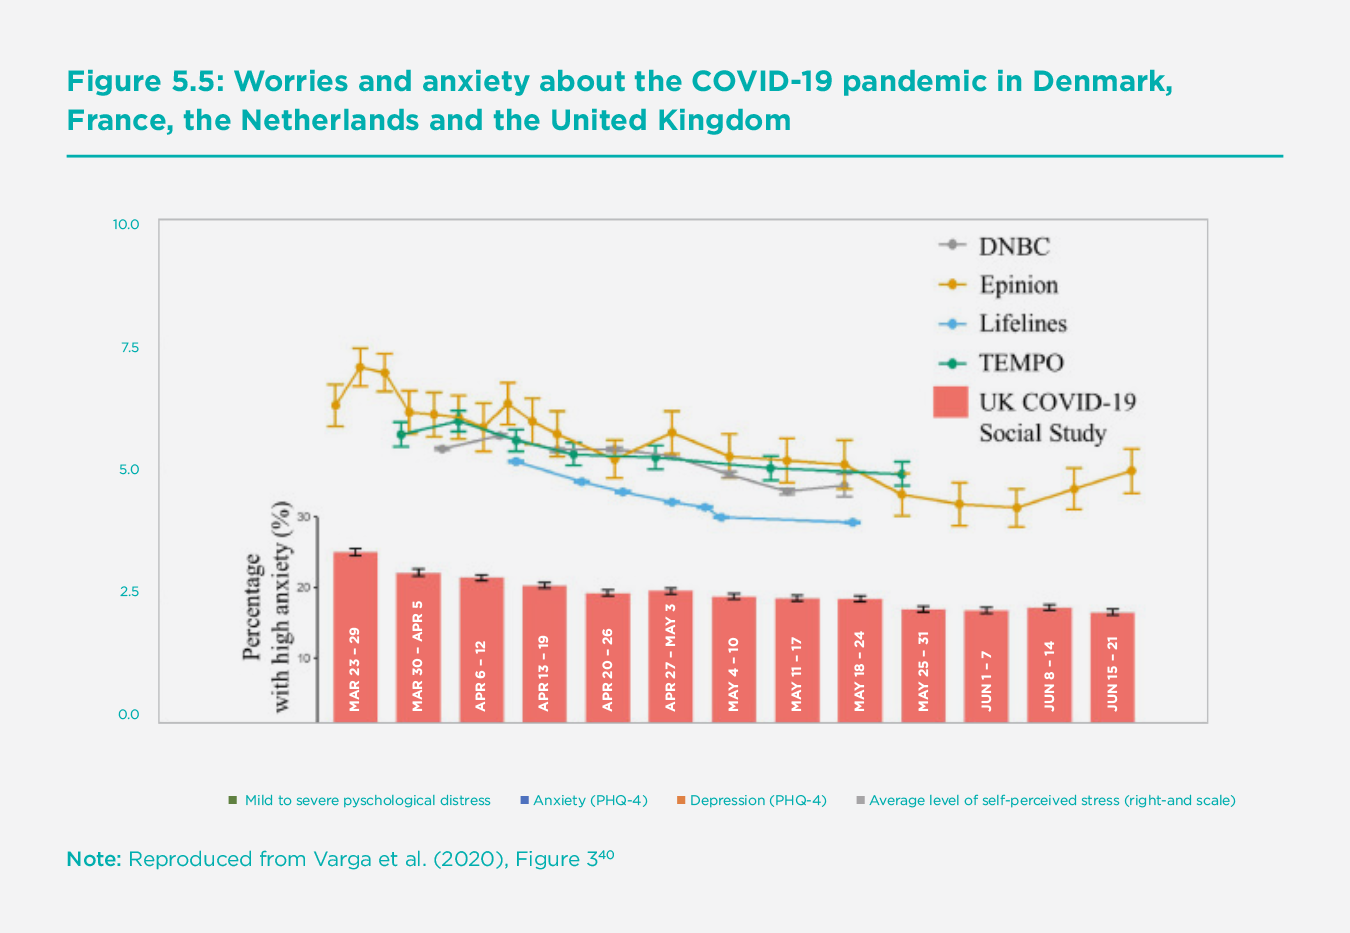 Figure 5.5 Worries and anxiety about the COVID-19 pandemic in Denmark, France, the Netherlands and the United Kingdom